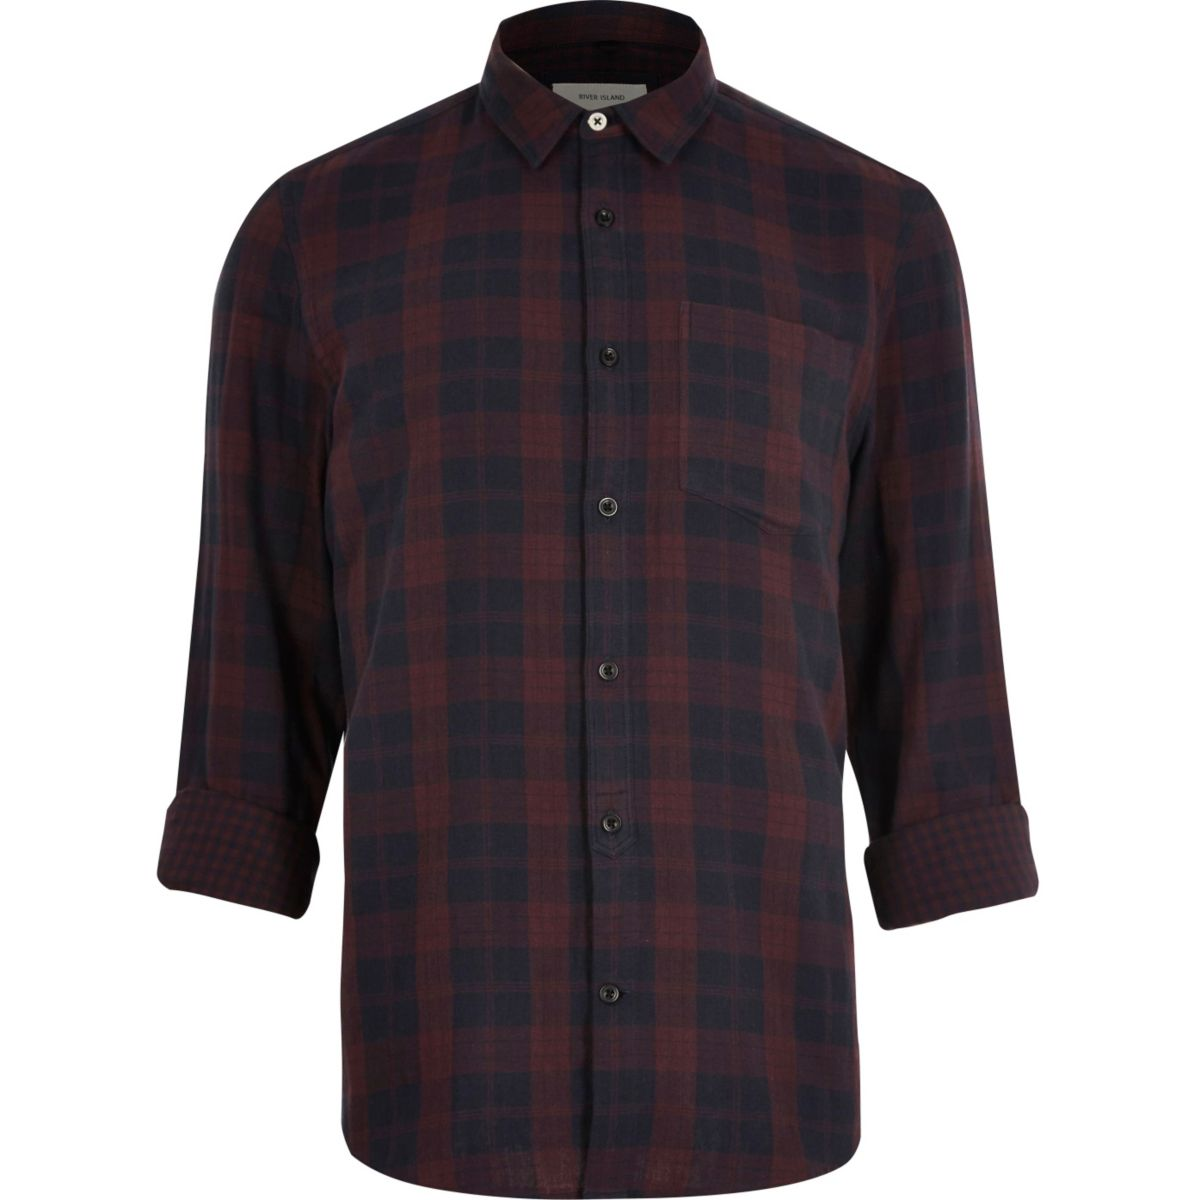 Burgundy double faced casual check shirt